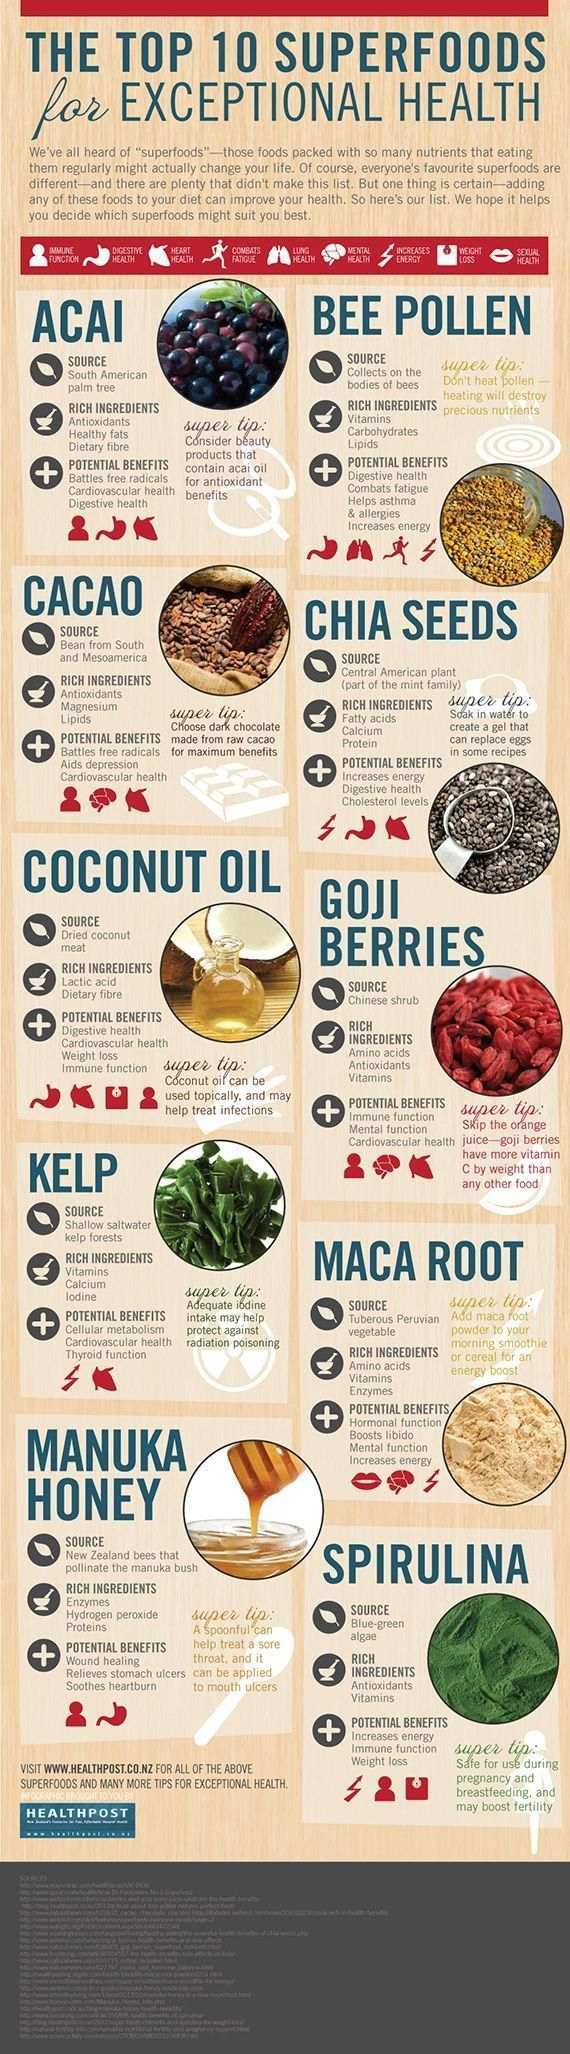 10 super foods you should be eating weekly. You don't have to pick up all of them but grab one or two next time you're at the market. It's a small investment with a big impact.